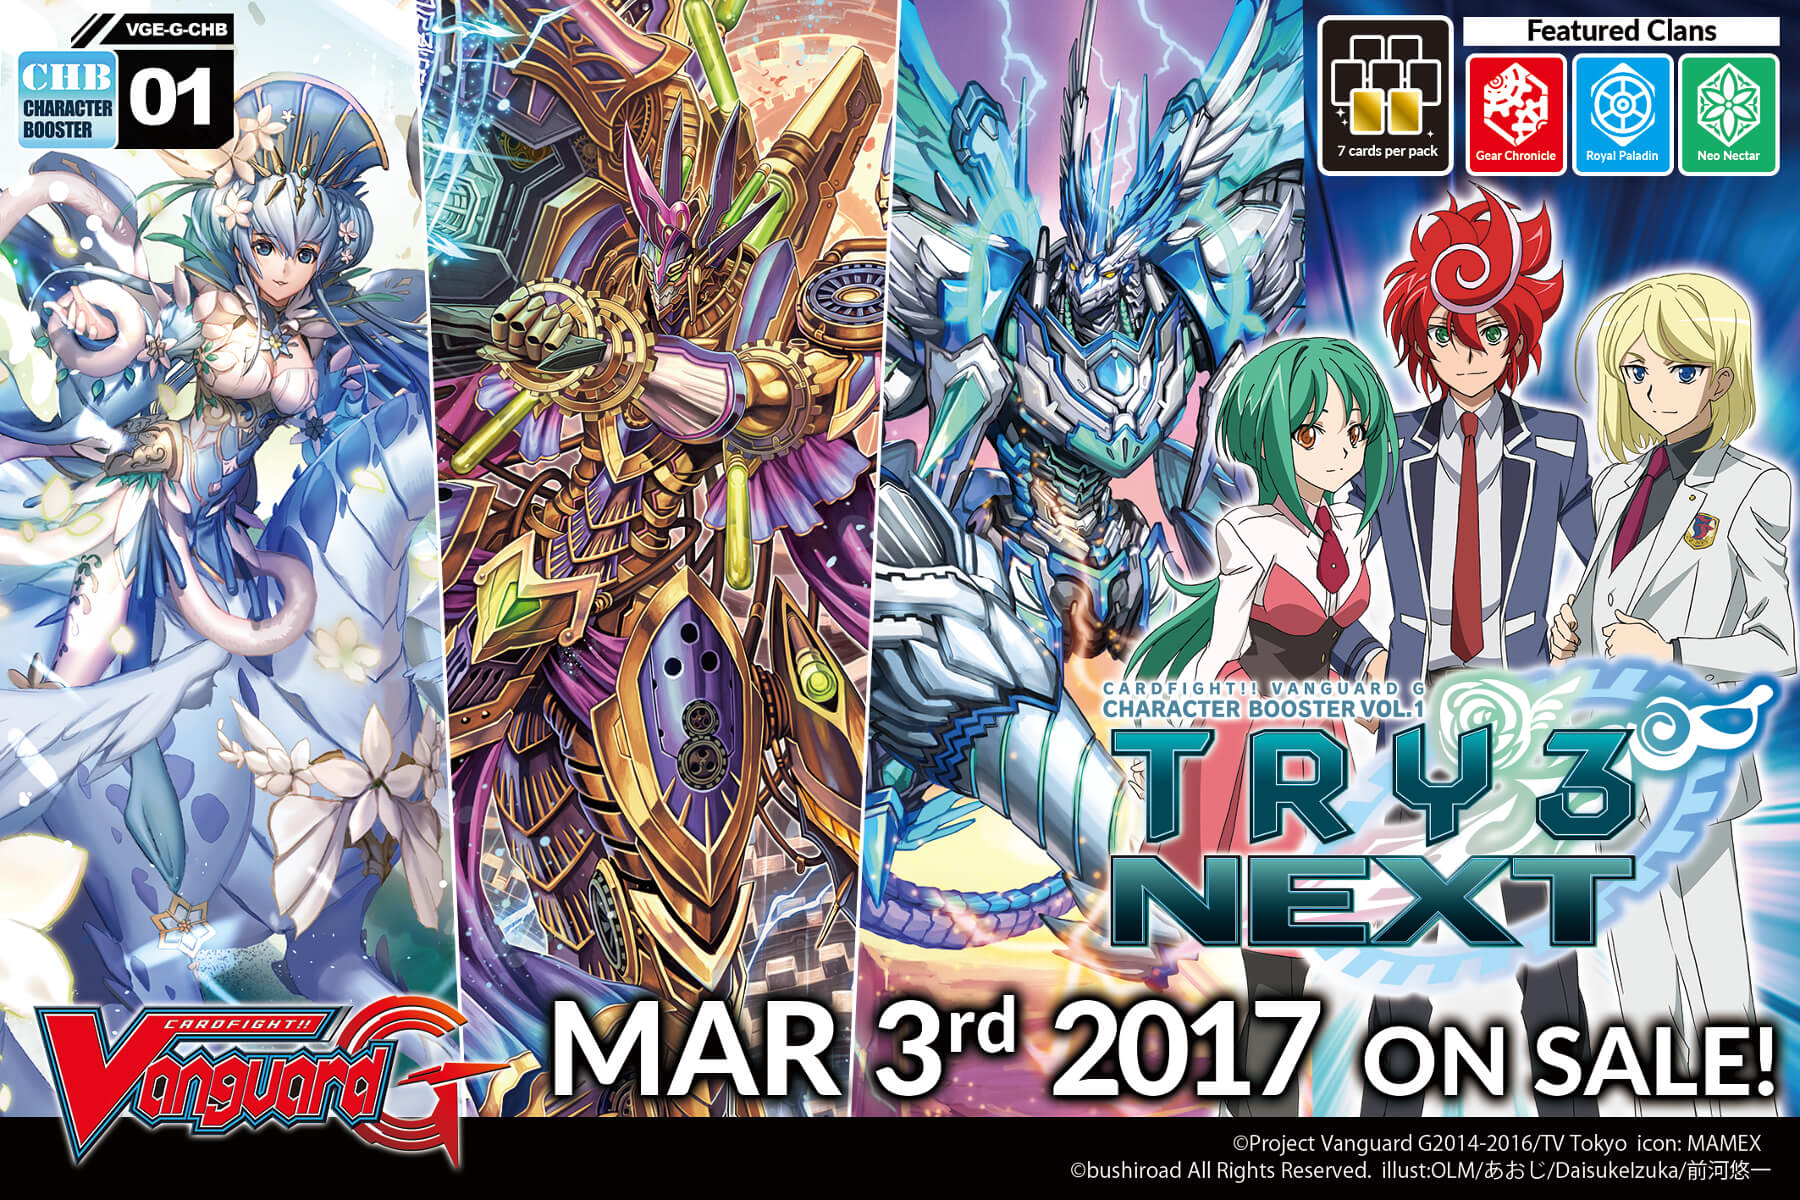 G Character Booster 1: TRY3 NEXT | Cardfight!! Vanguard Wiki